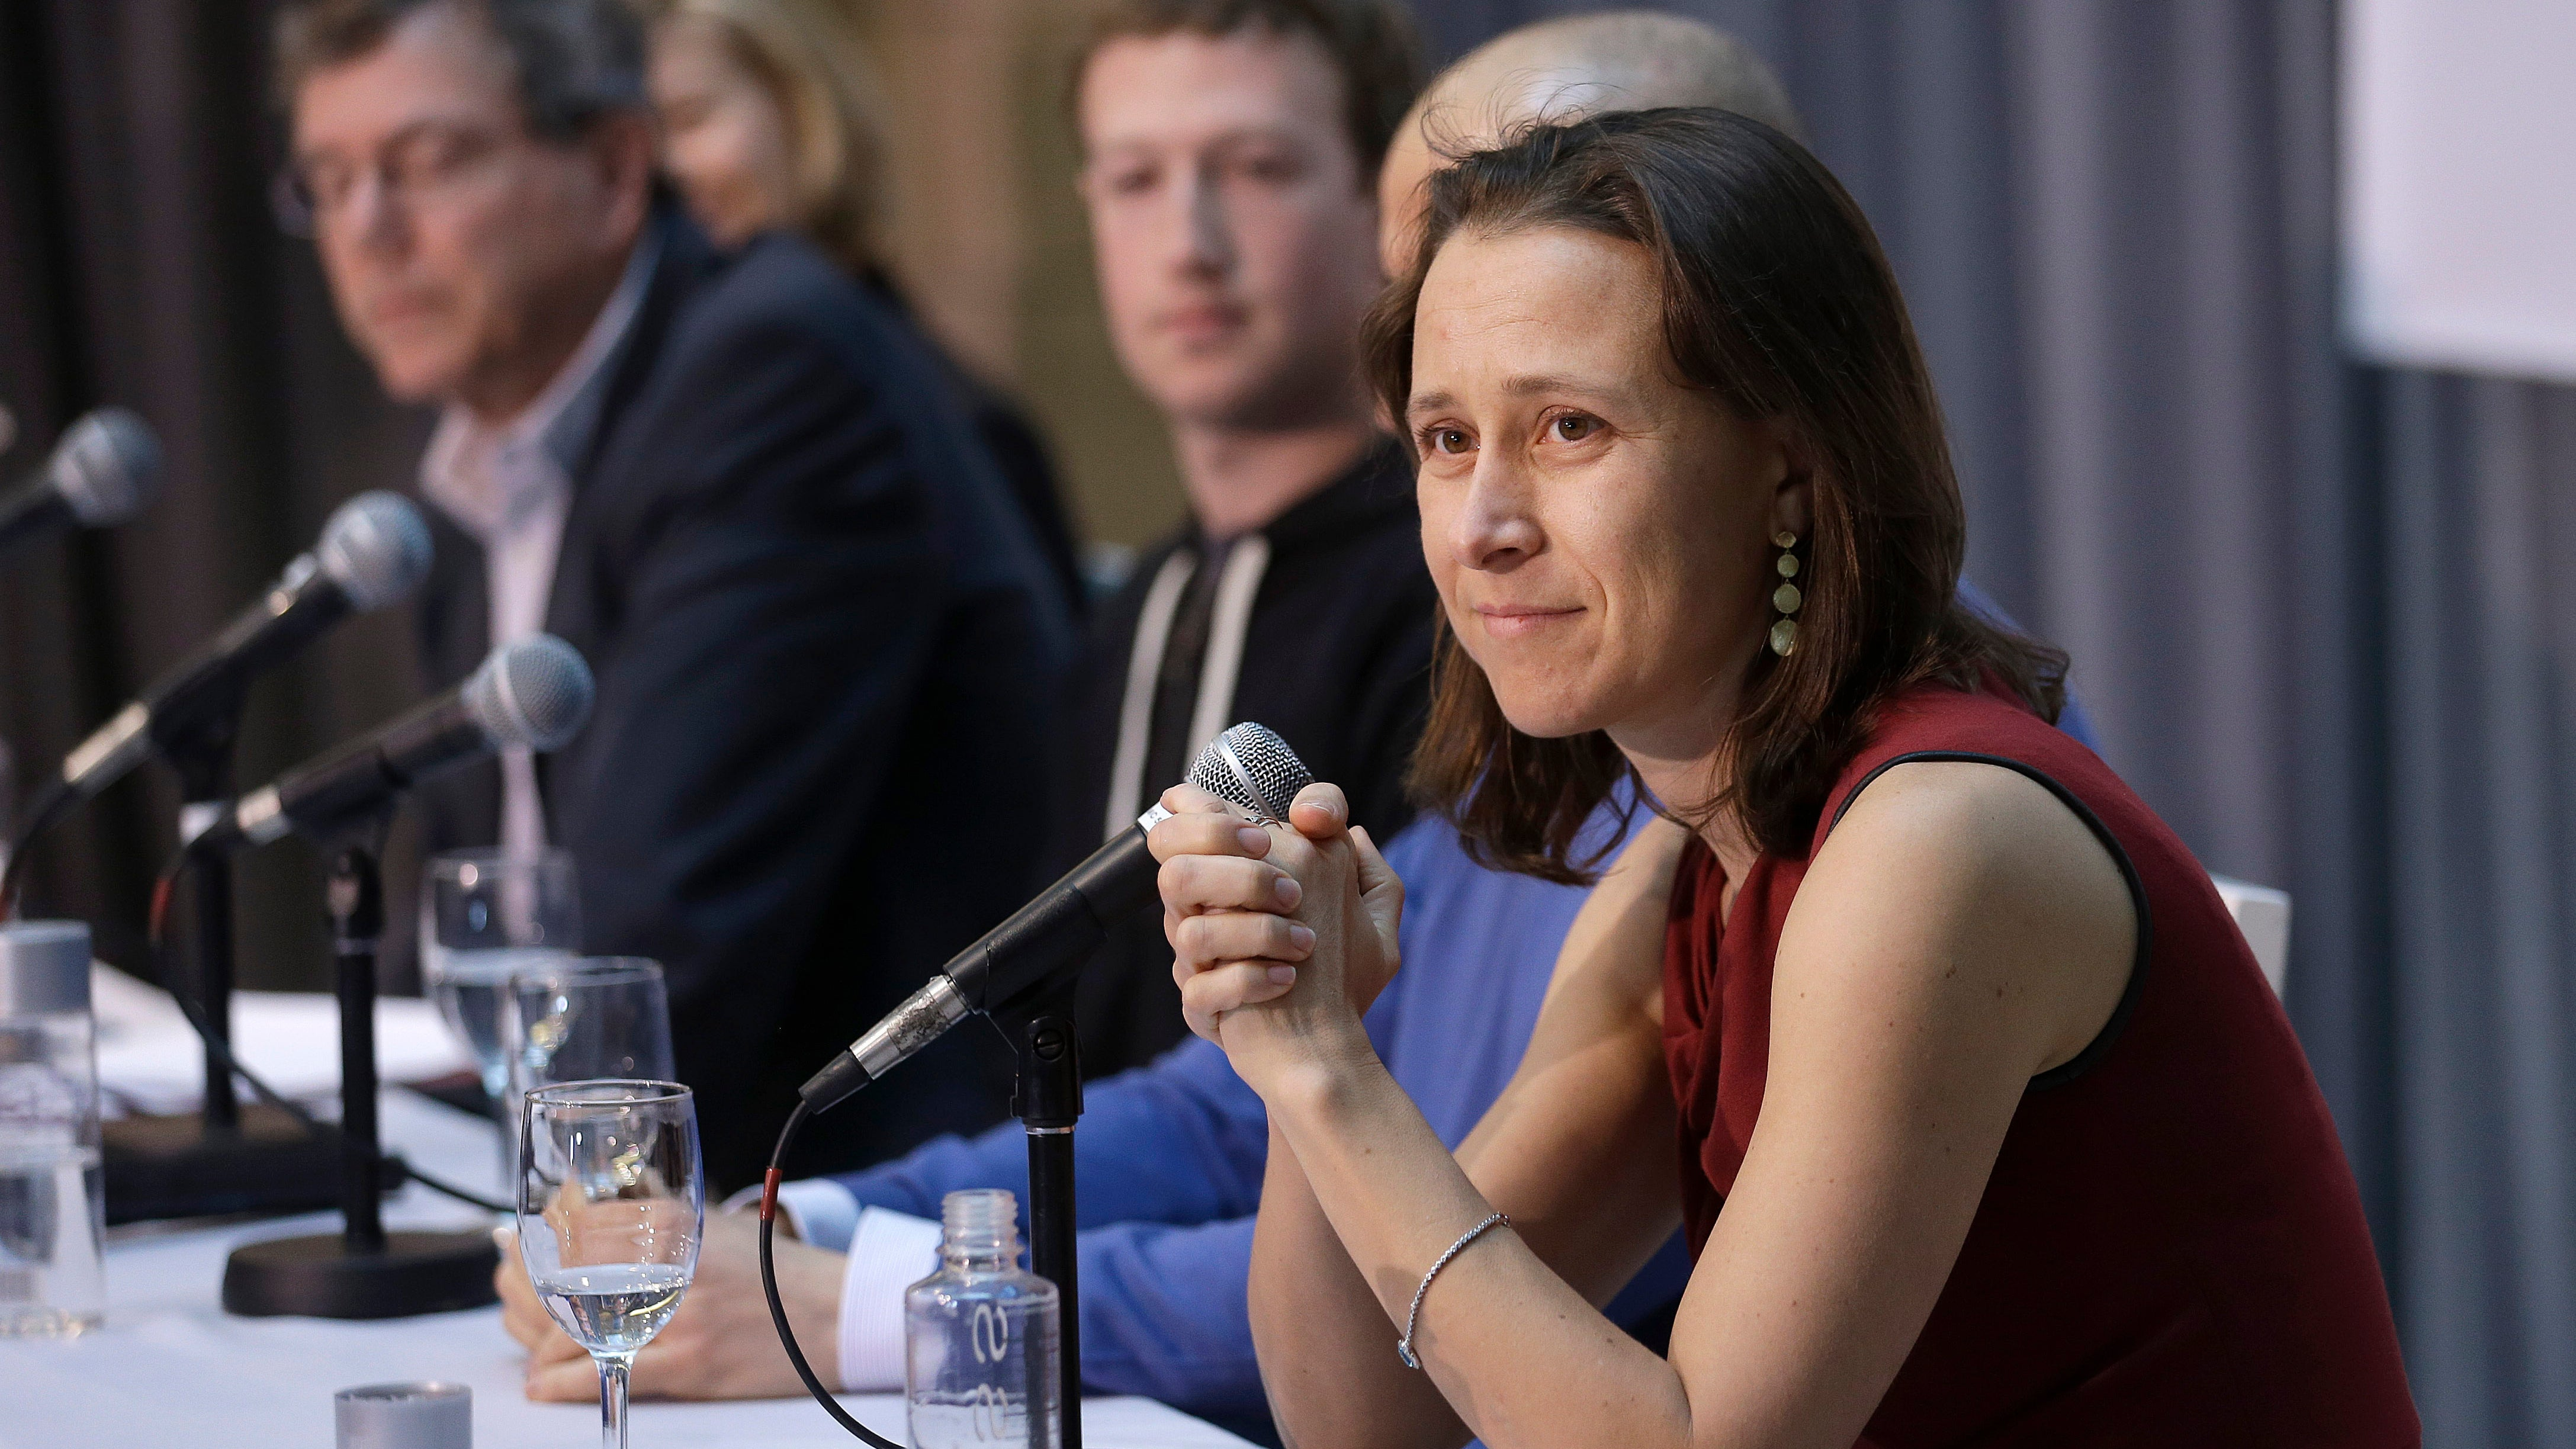 23andMe CEO Compares DNA Tests To At-Home Pregnancy Tests, But It's Not That Simple